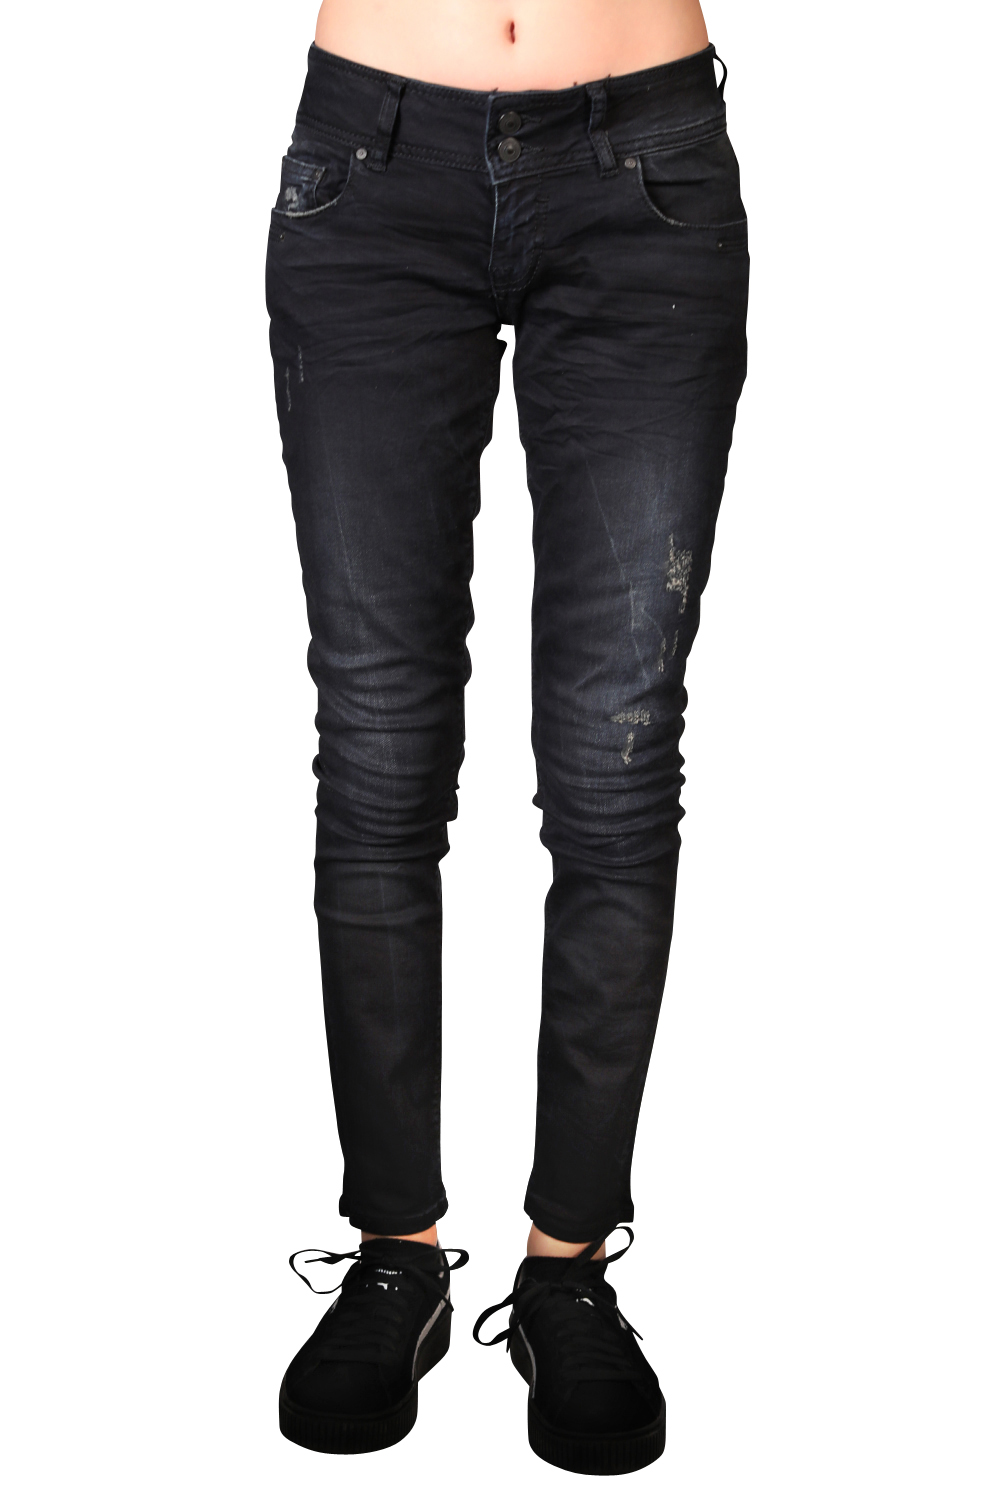 Jeans & Mode | LTB 50071 50354 GEORGET Miracle Wash Damen